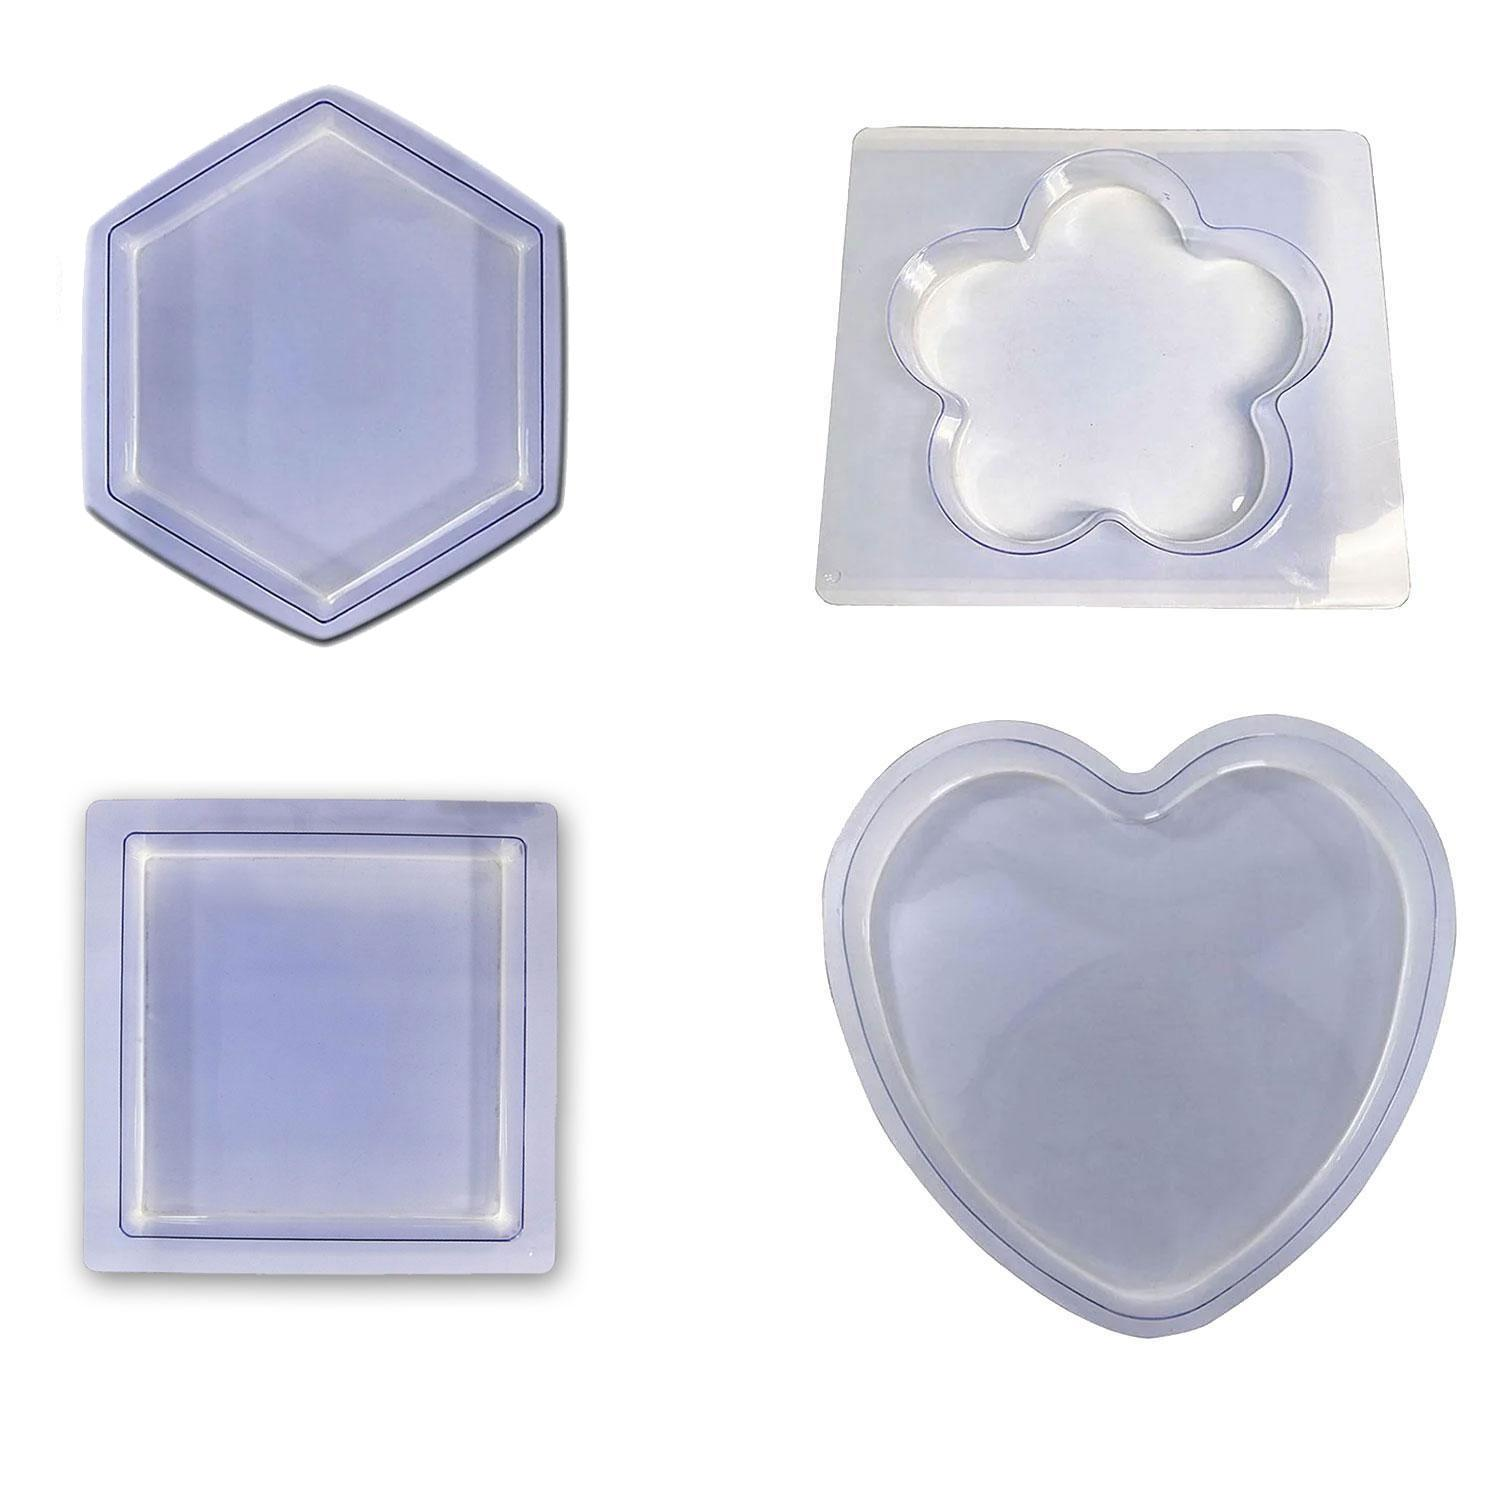 Clear Stepping Stones Mold Assortment - 4 Pack